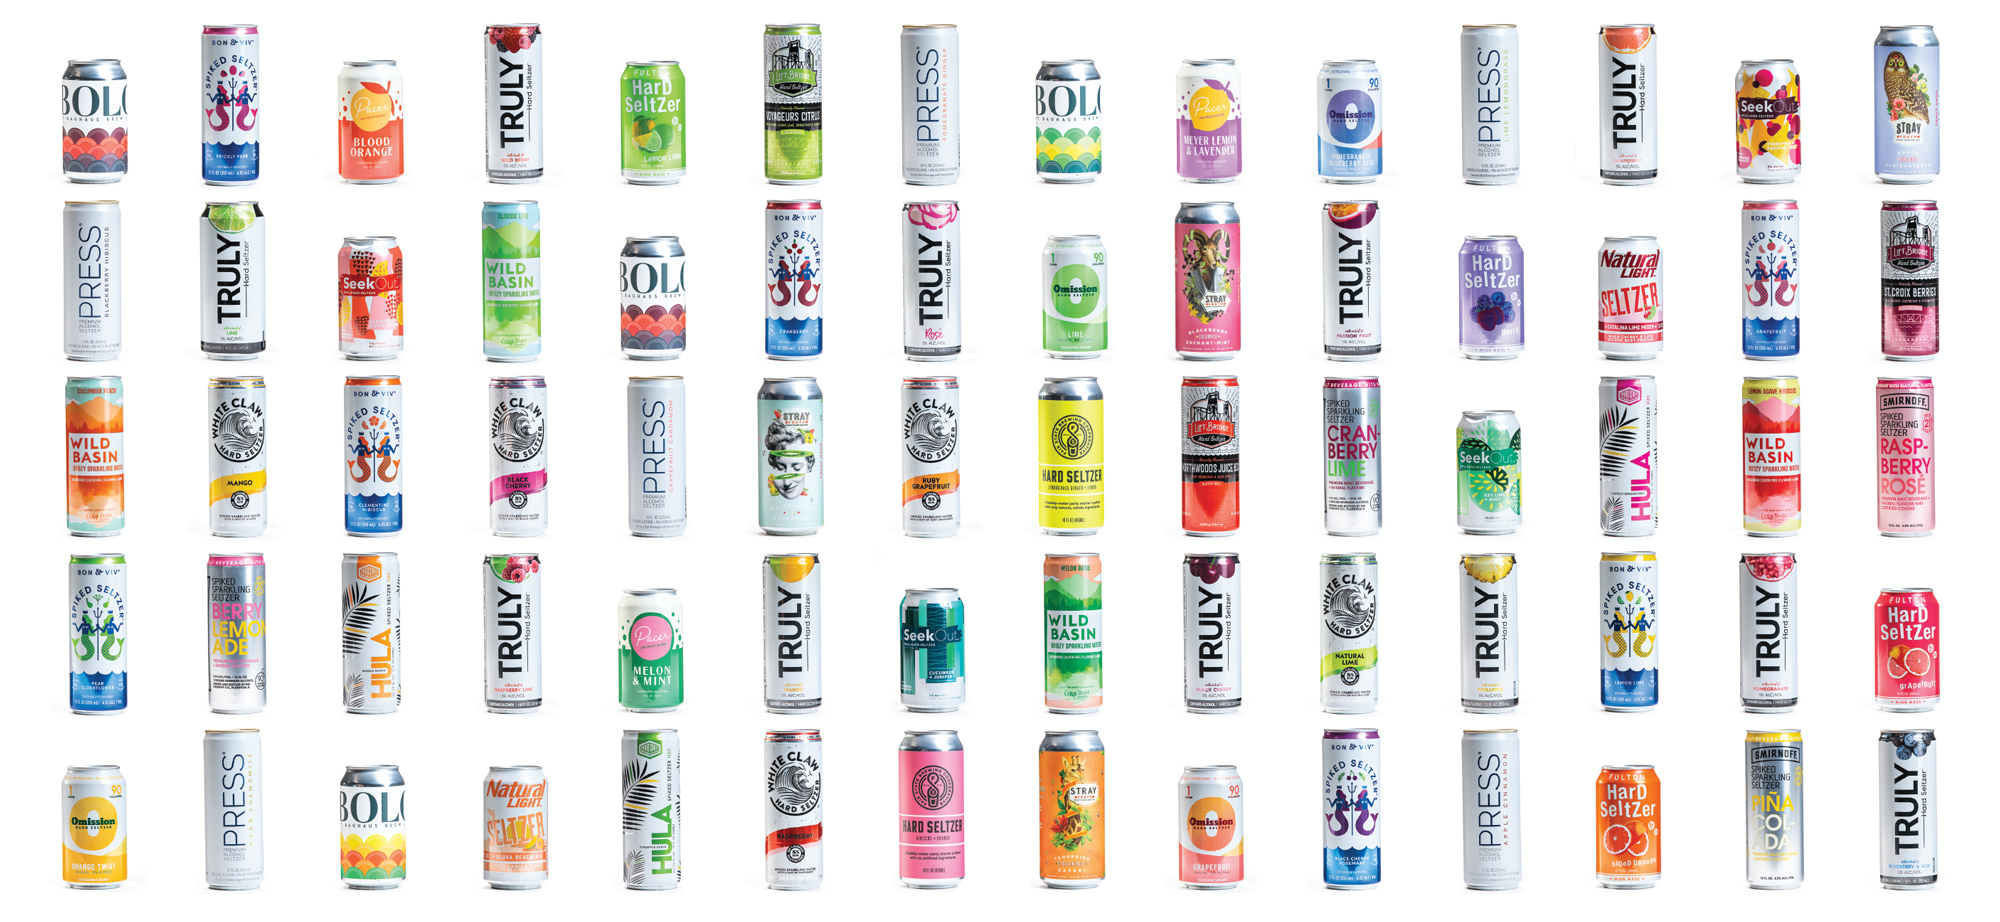 The Growler's editorial team blind tasted 70 flavors of hard seltzer from brands that are available on retails shelves in Minnesota // Photo by Tj Turner